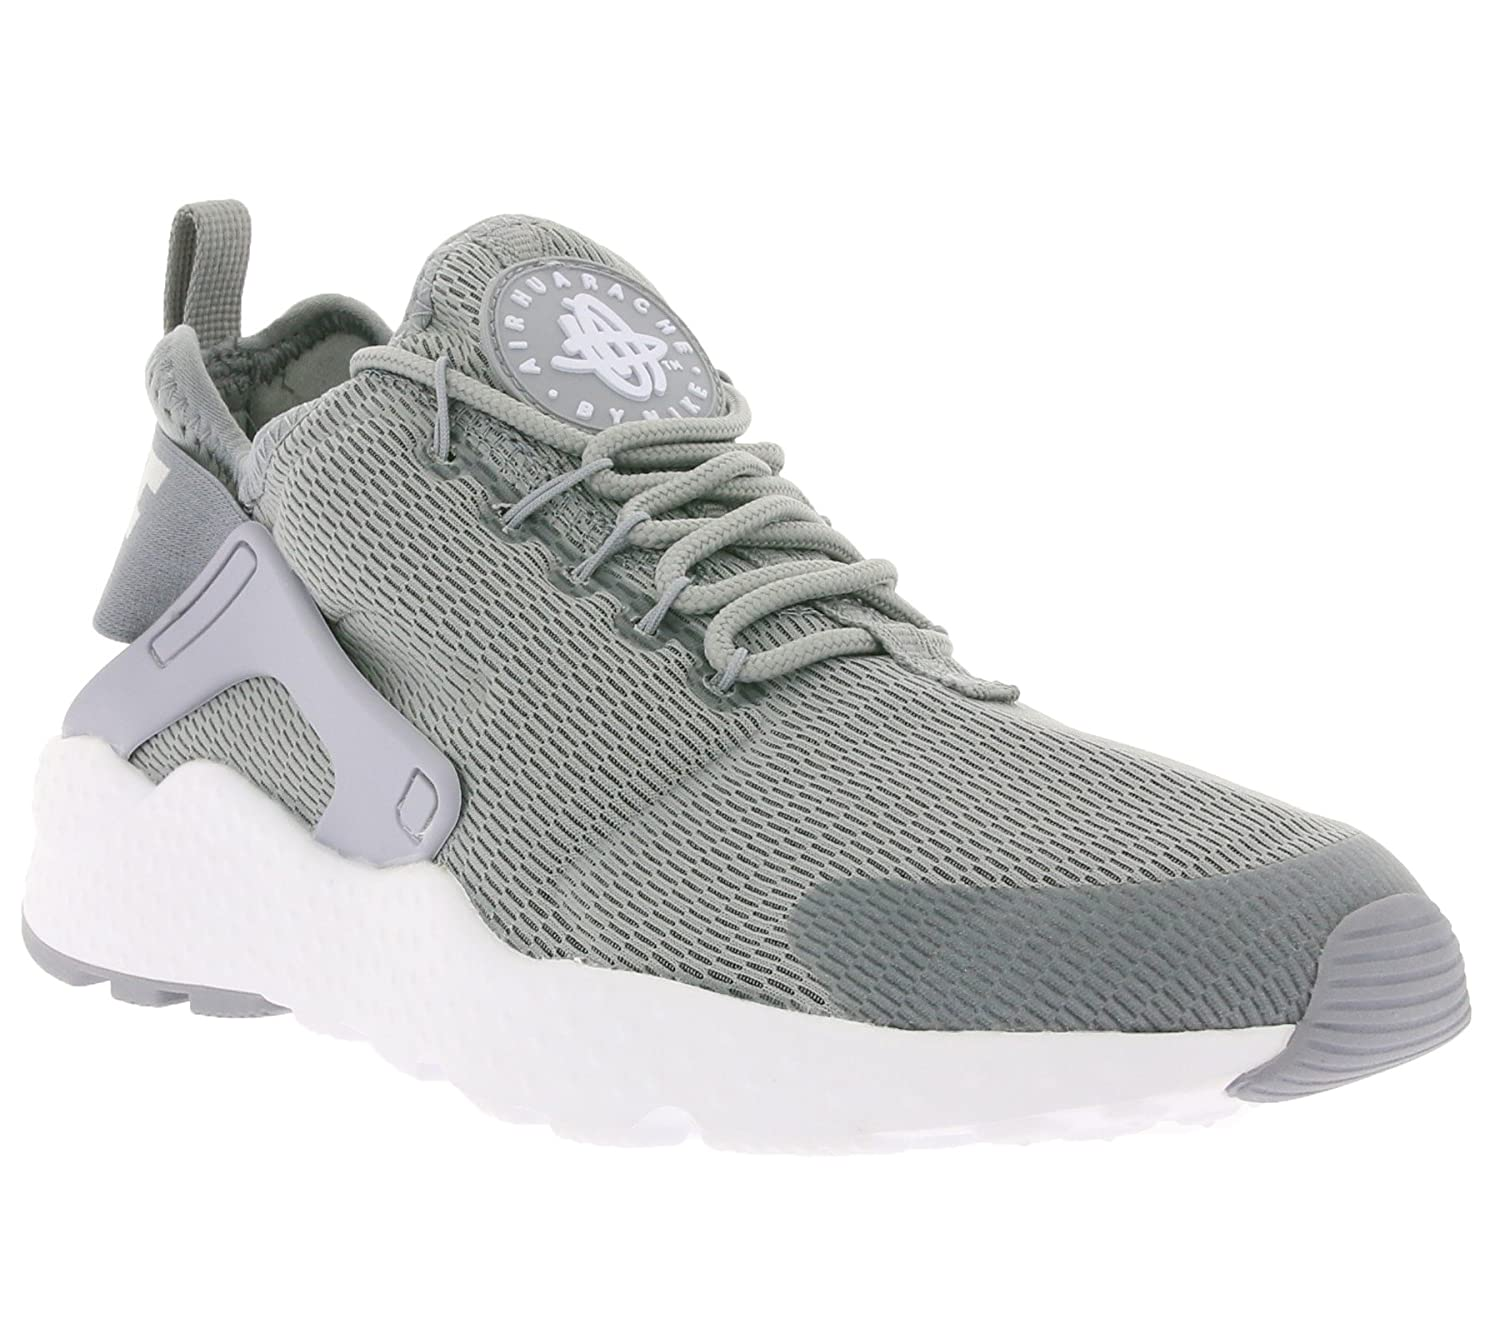 best cheap 9e510 2ce6f NIKE Womens Air Huarache Run Ultra Running Trainers 819151 Sneakers Shoes (Stealth  White 003)  Amazon.co.uk  Shoes   Bags